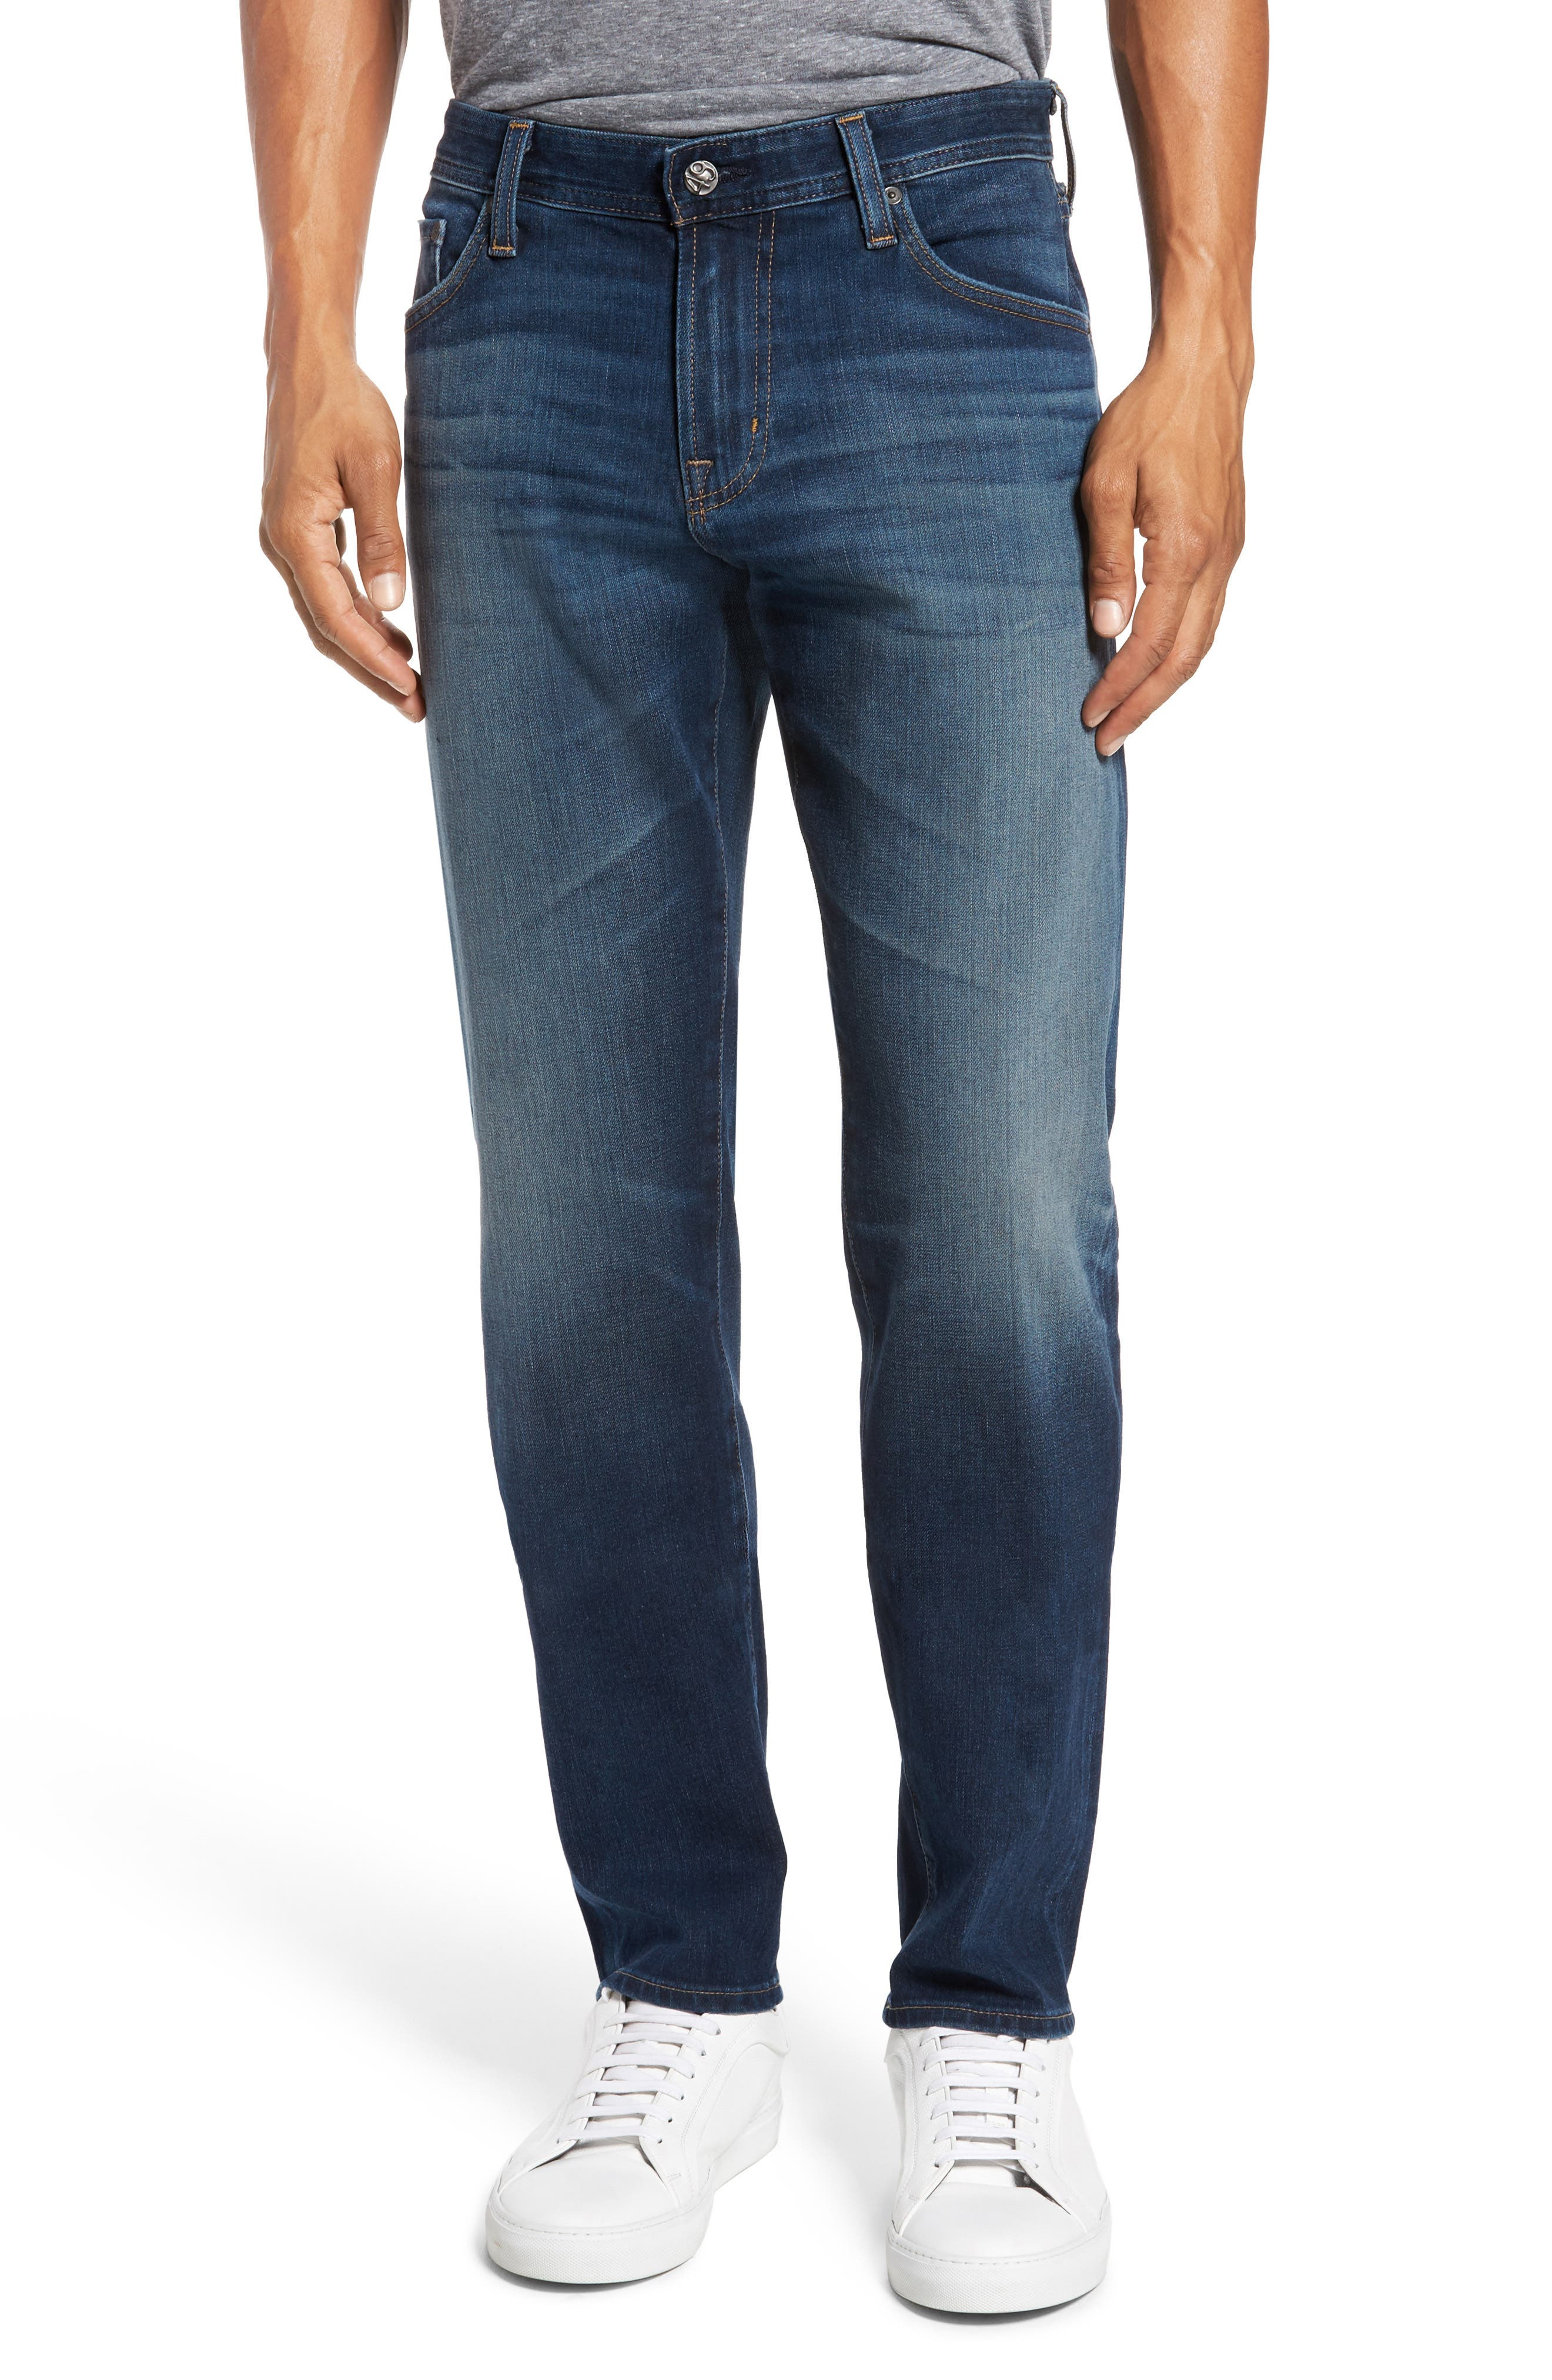 Graduate Slim Straight Fit Jeans,                         Main,                         color, 10 Years Shortcut